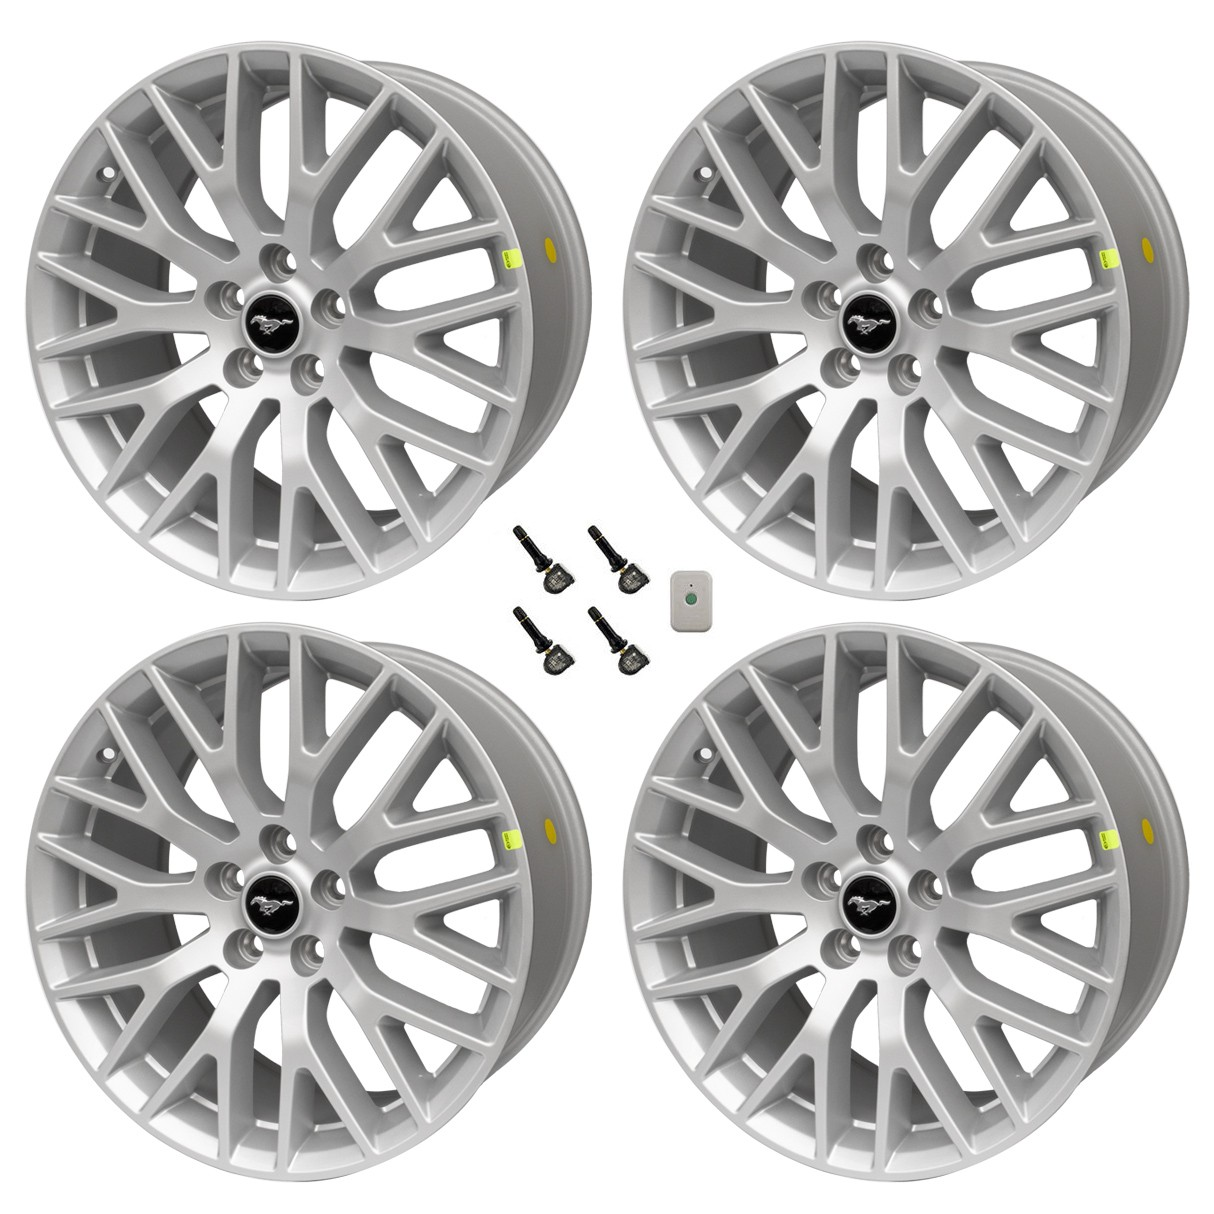 2015 2017 Mustang Wheels >> 2015 2017 Ford Mustang Gt Oem 19 X 9 X 9 5 Staggered Silver